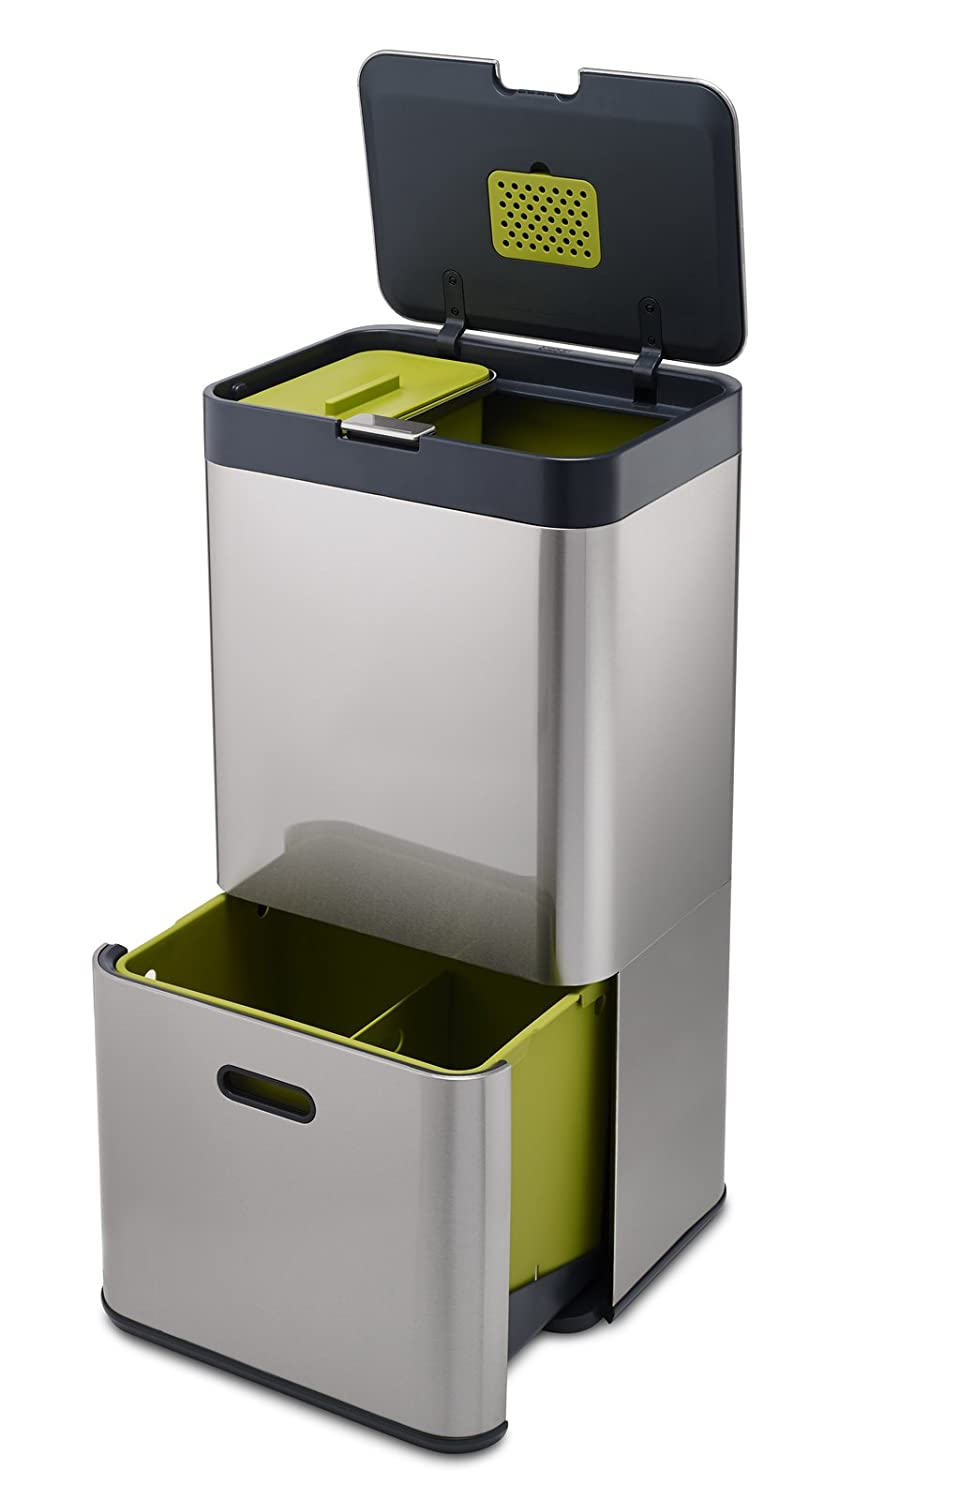 Perfect Amazon.com: Joseph Joseph 30022 Intelligent Waste Totem Kitchen Trash Can  And Recycle Bin Unit With Compost Bin, 16 Gallon/60 Liter, Stainless Steel:  ...